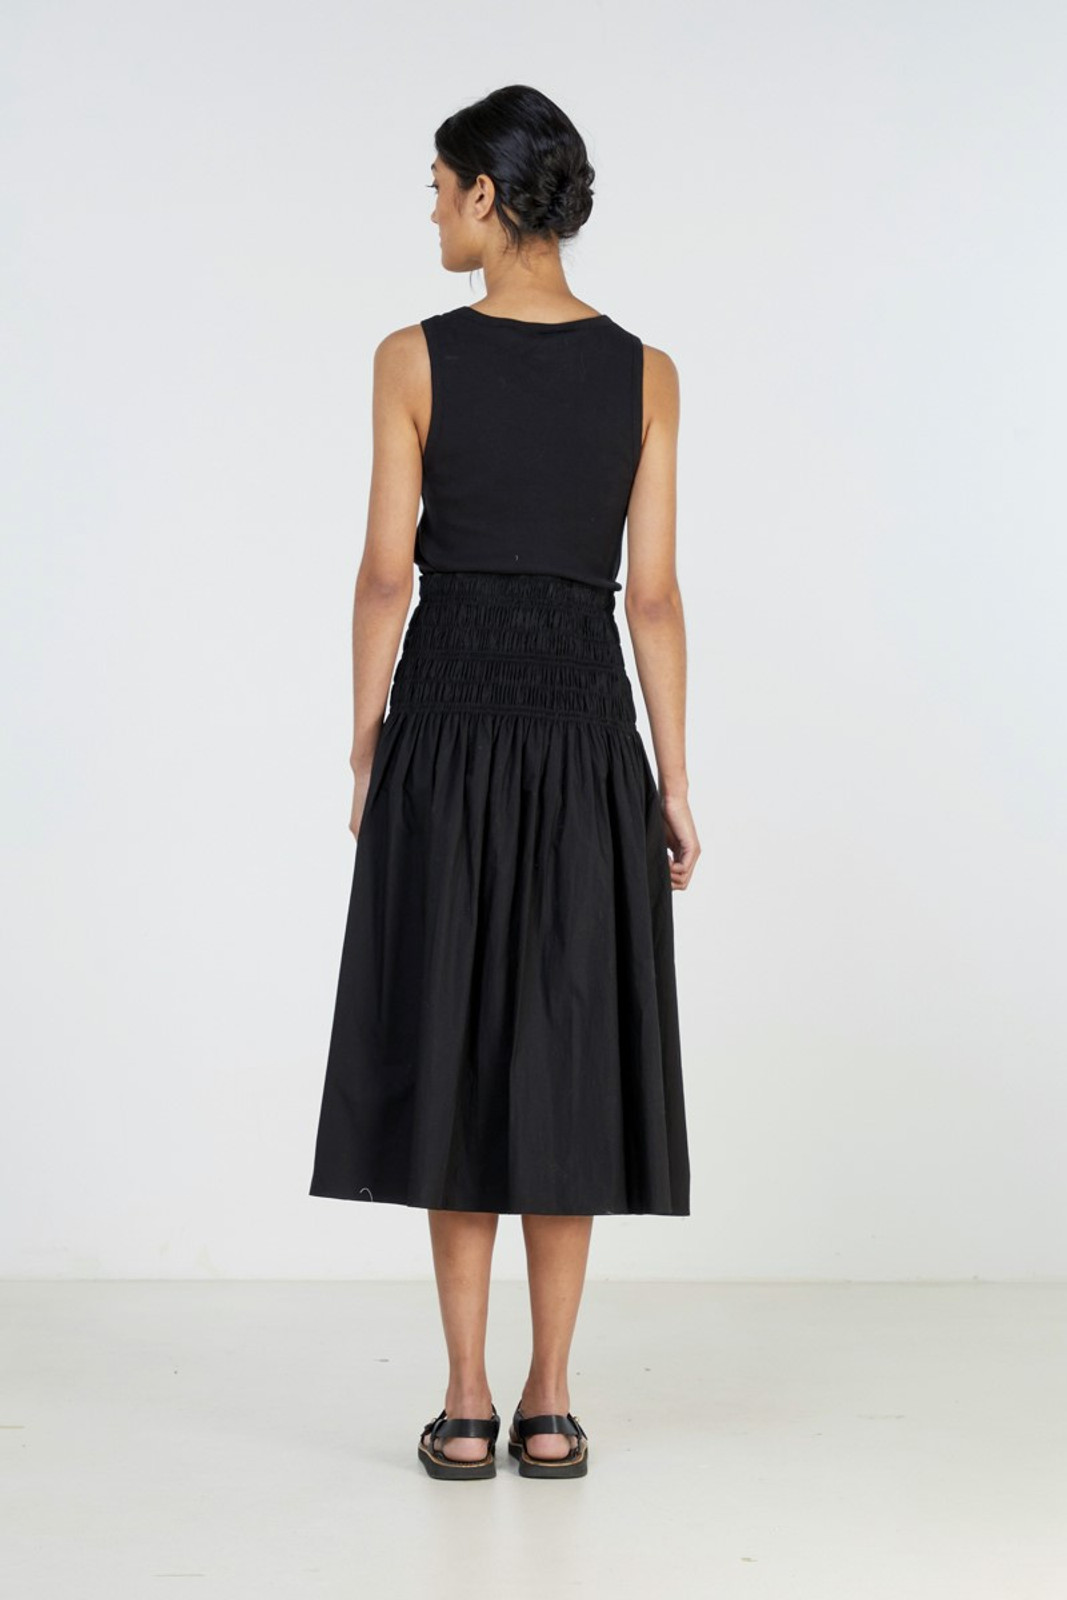 Elka Collective Theory Skirt Black  3